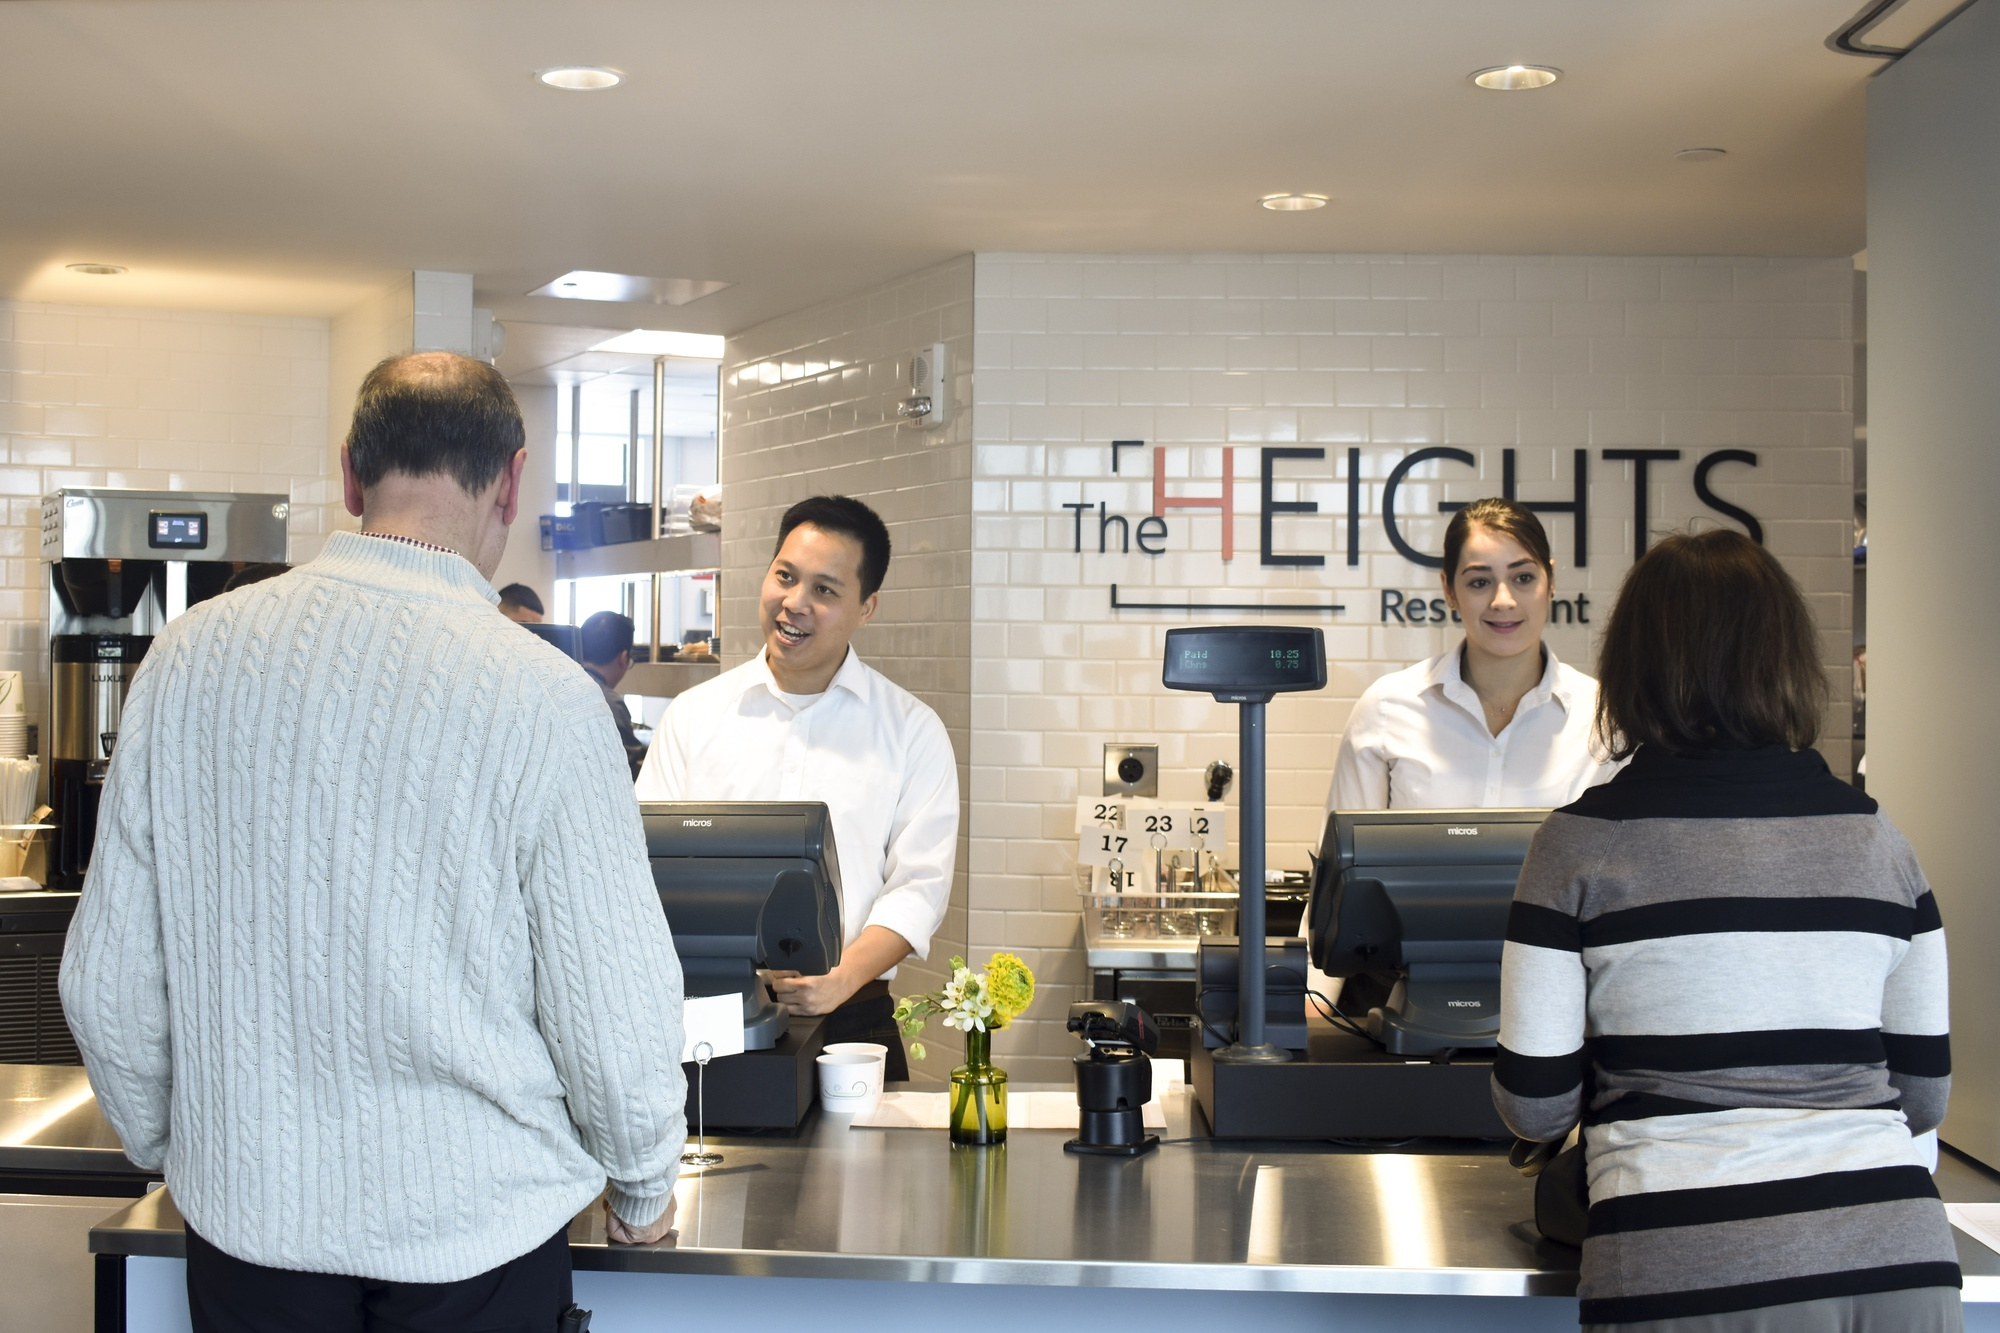 The Heights Restaurant opened on the tenth floor of the Smith Campus Center on Monday.